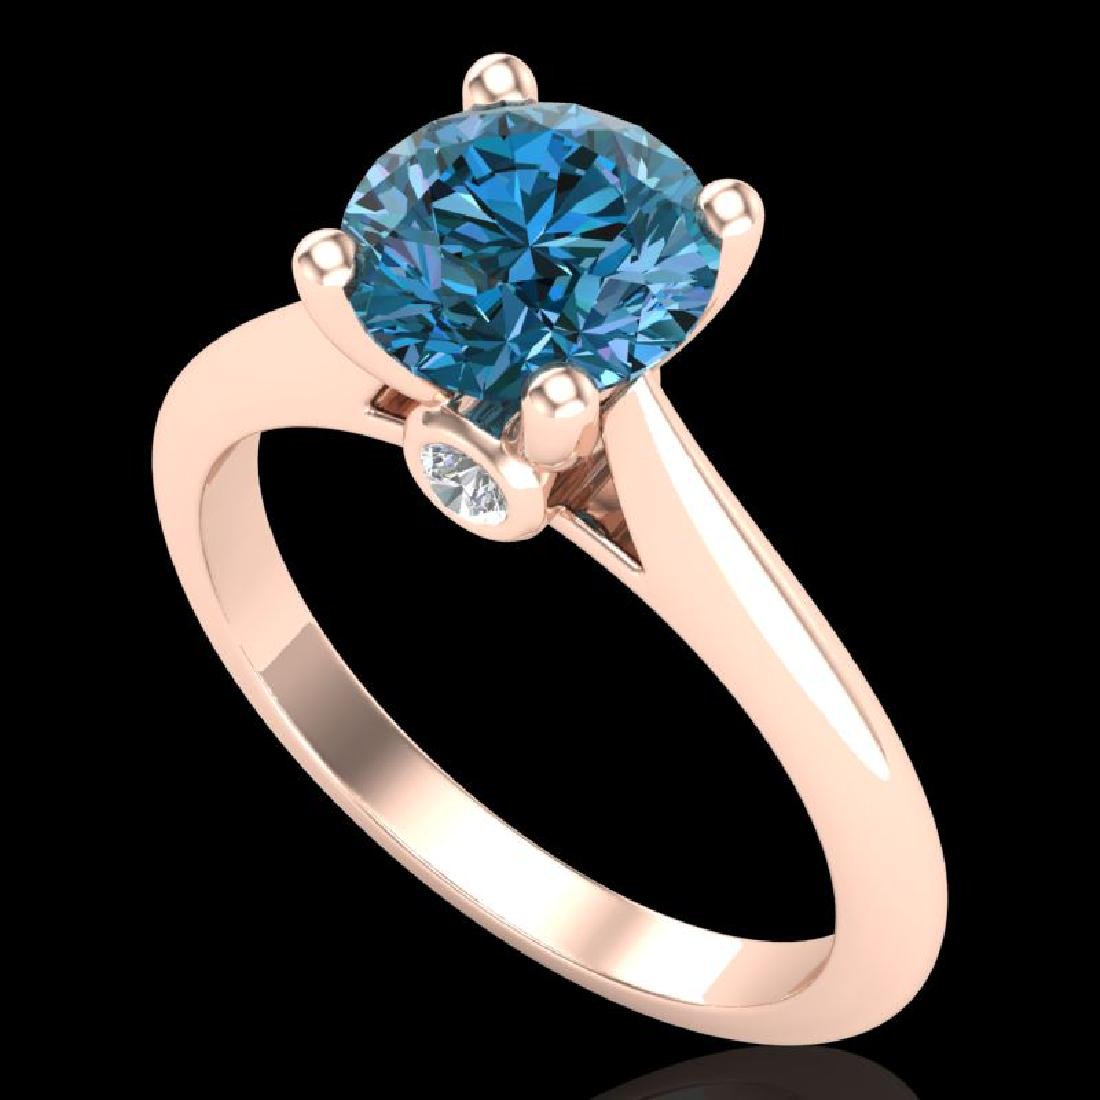 1.6 CTW Intense Blue Diamond Solitaire Engagement Art